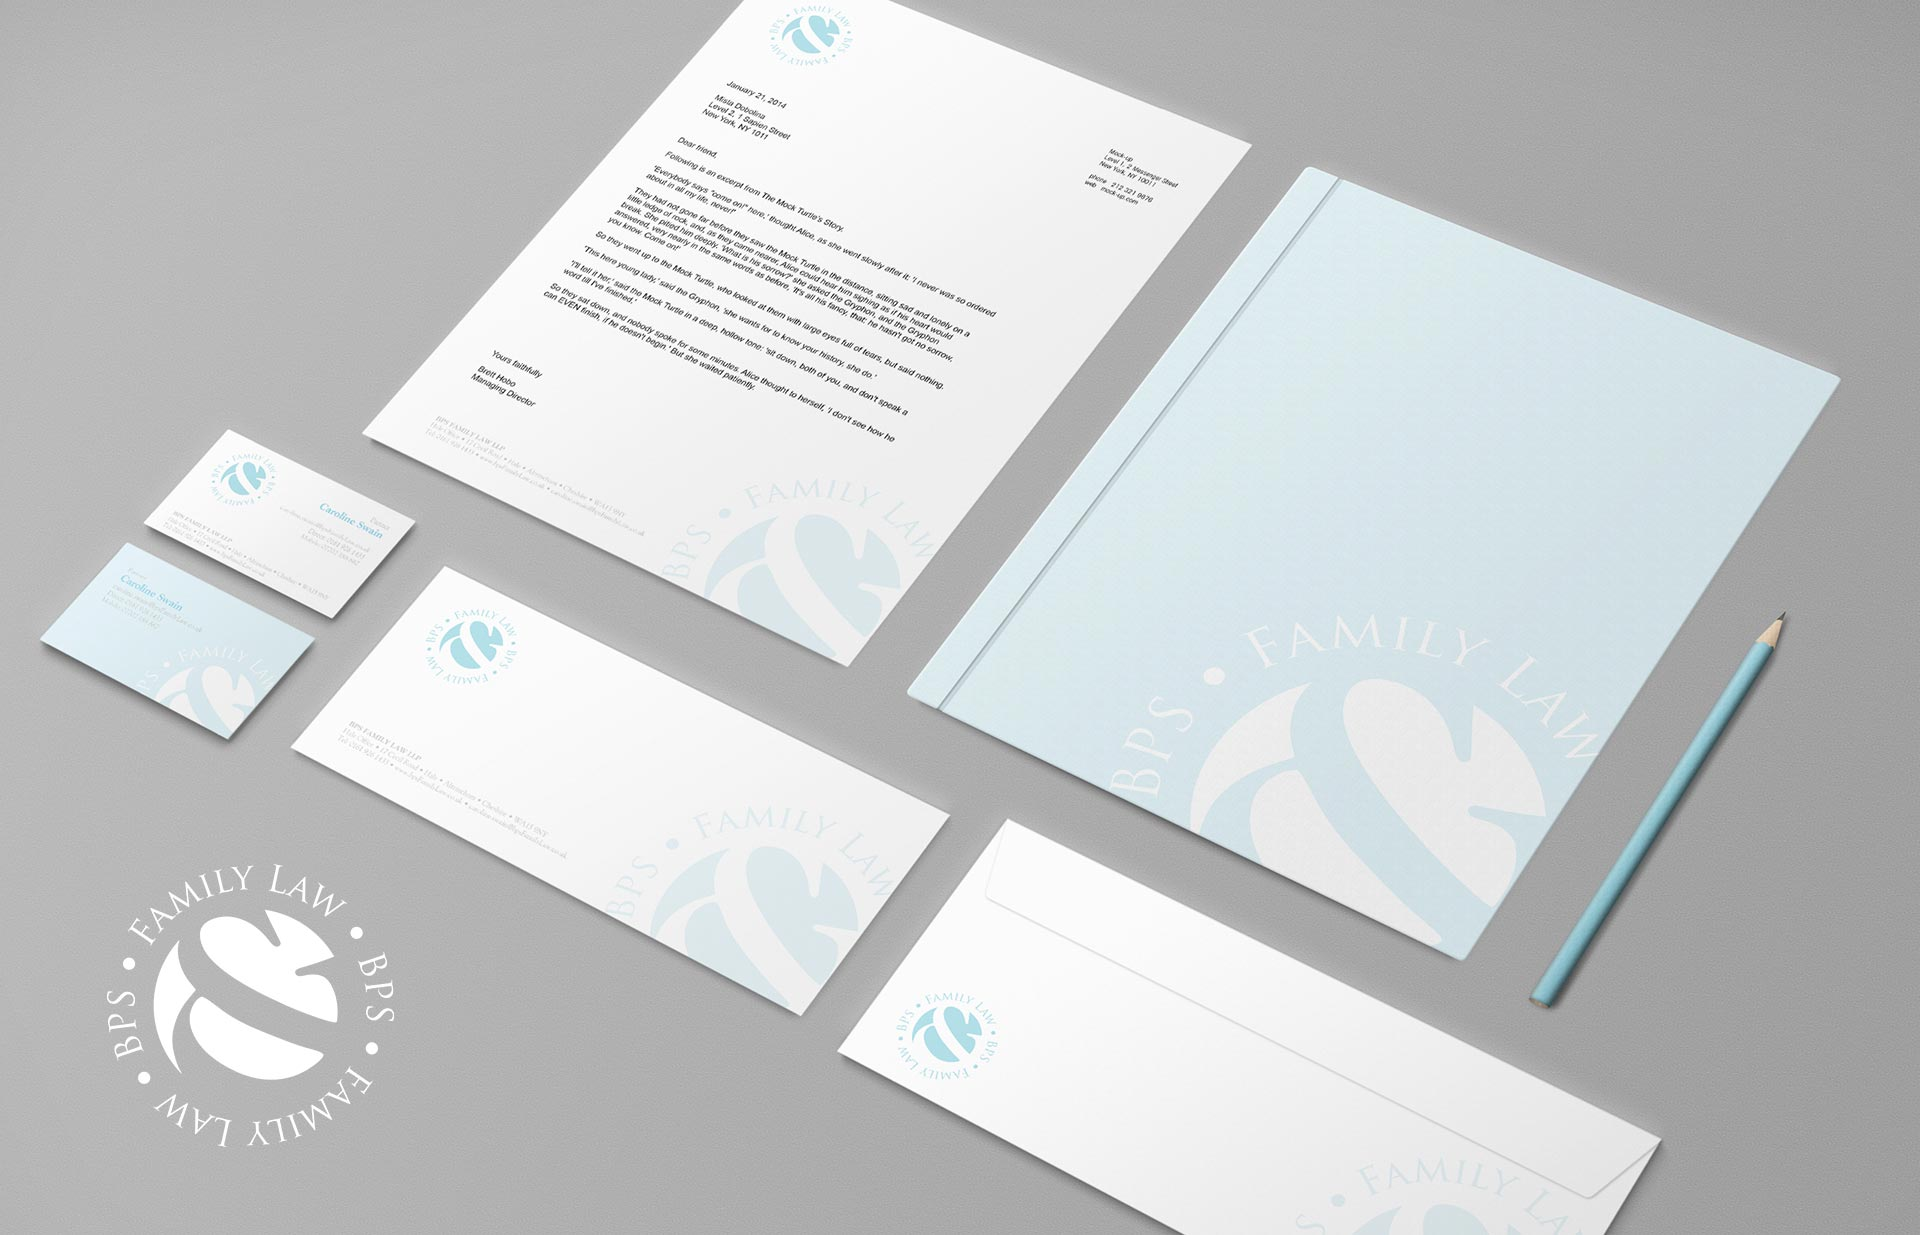 Stationary design for a family law business. Creative by Twistedgifted.